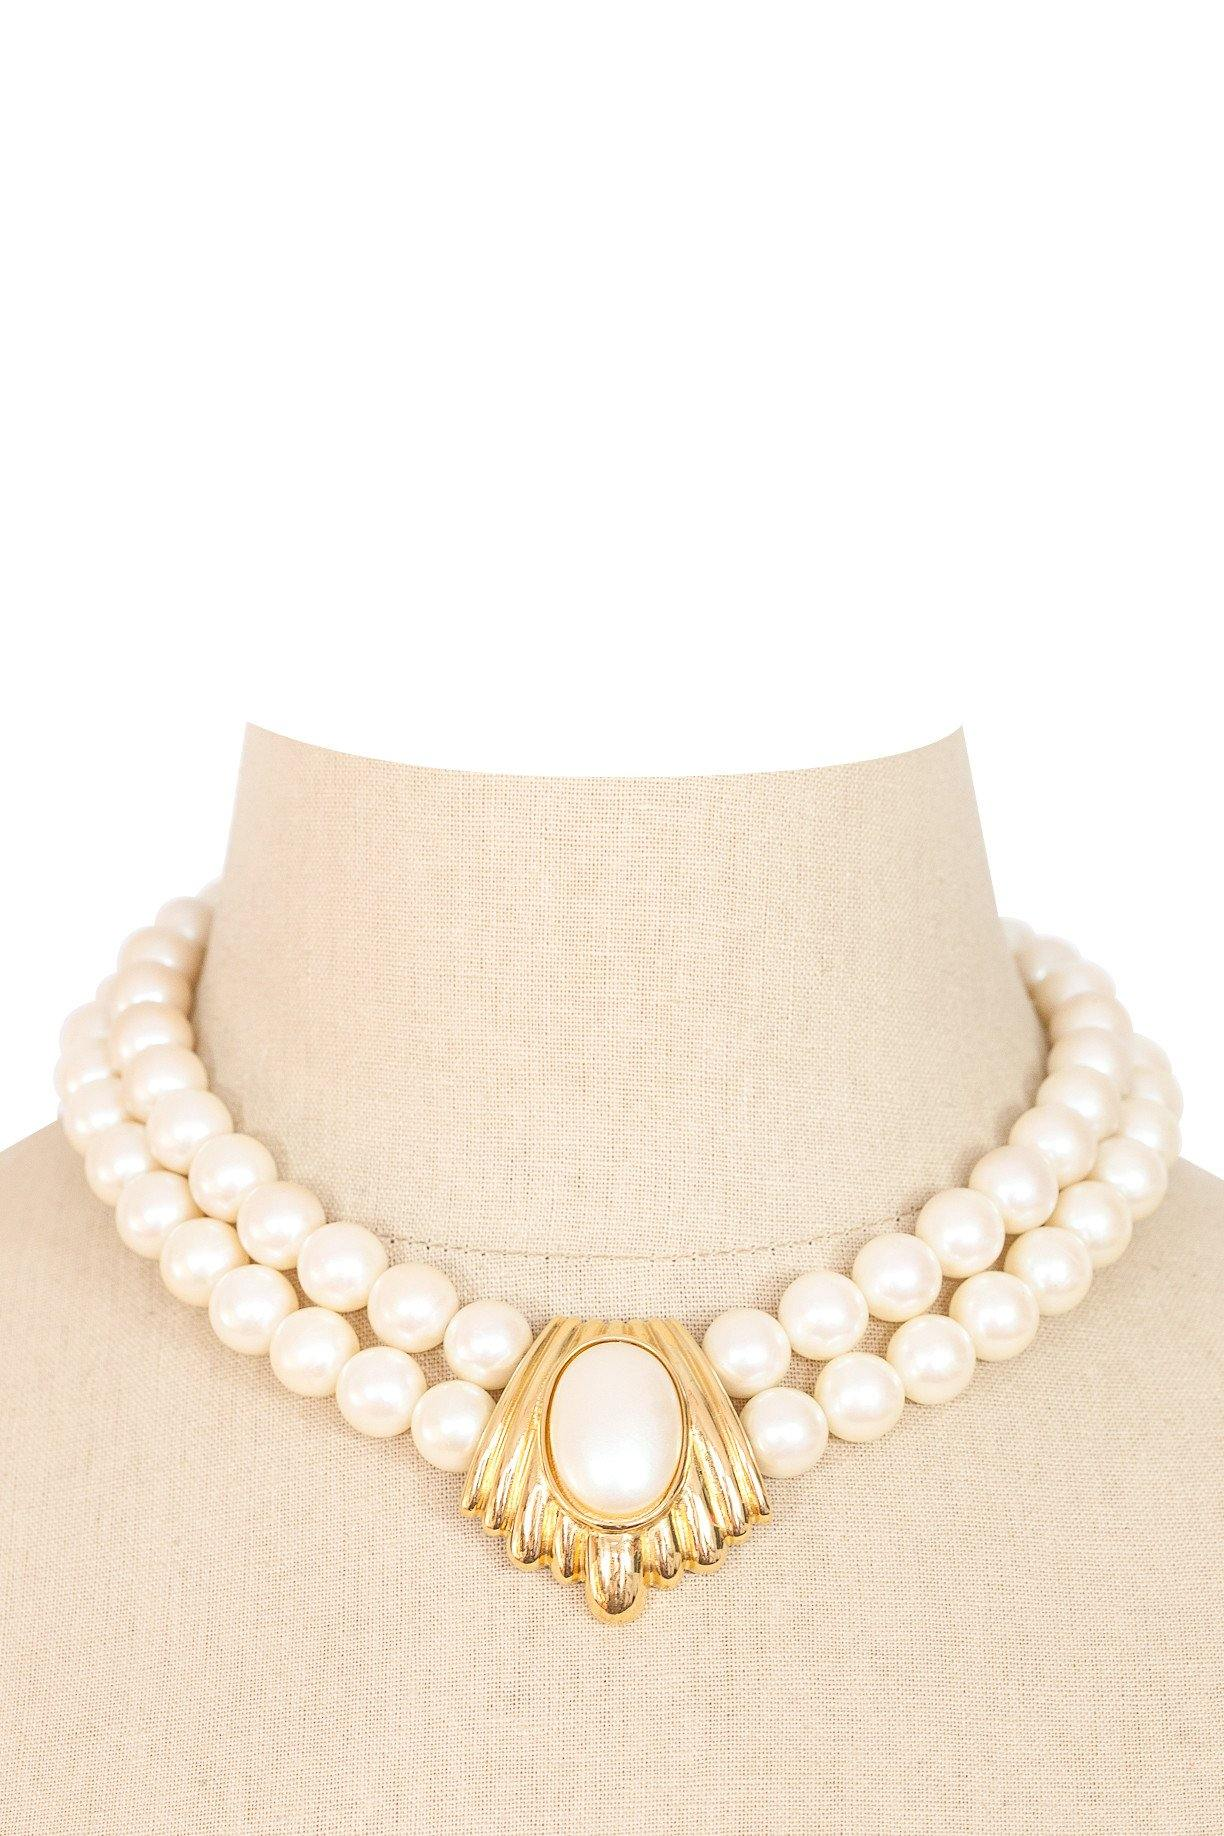 80's__Richelieu__Pearl Statement Necklace